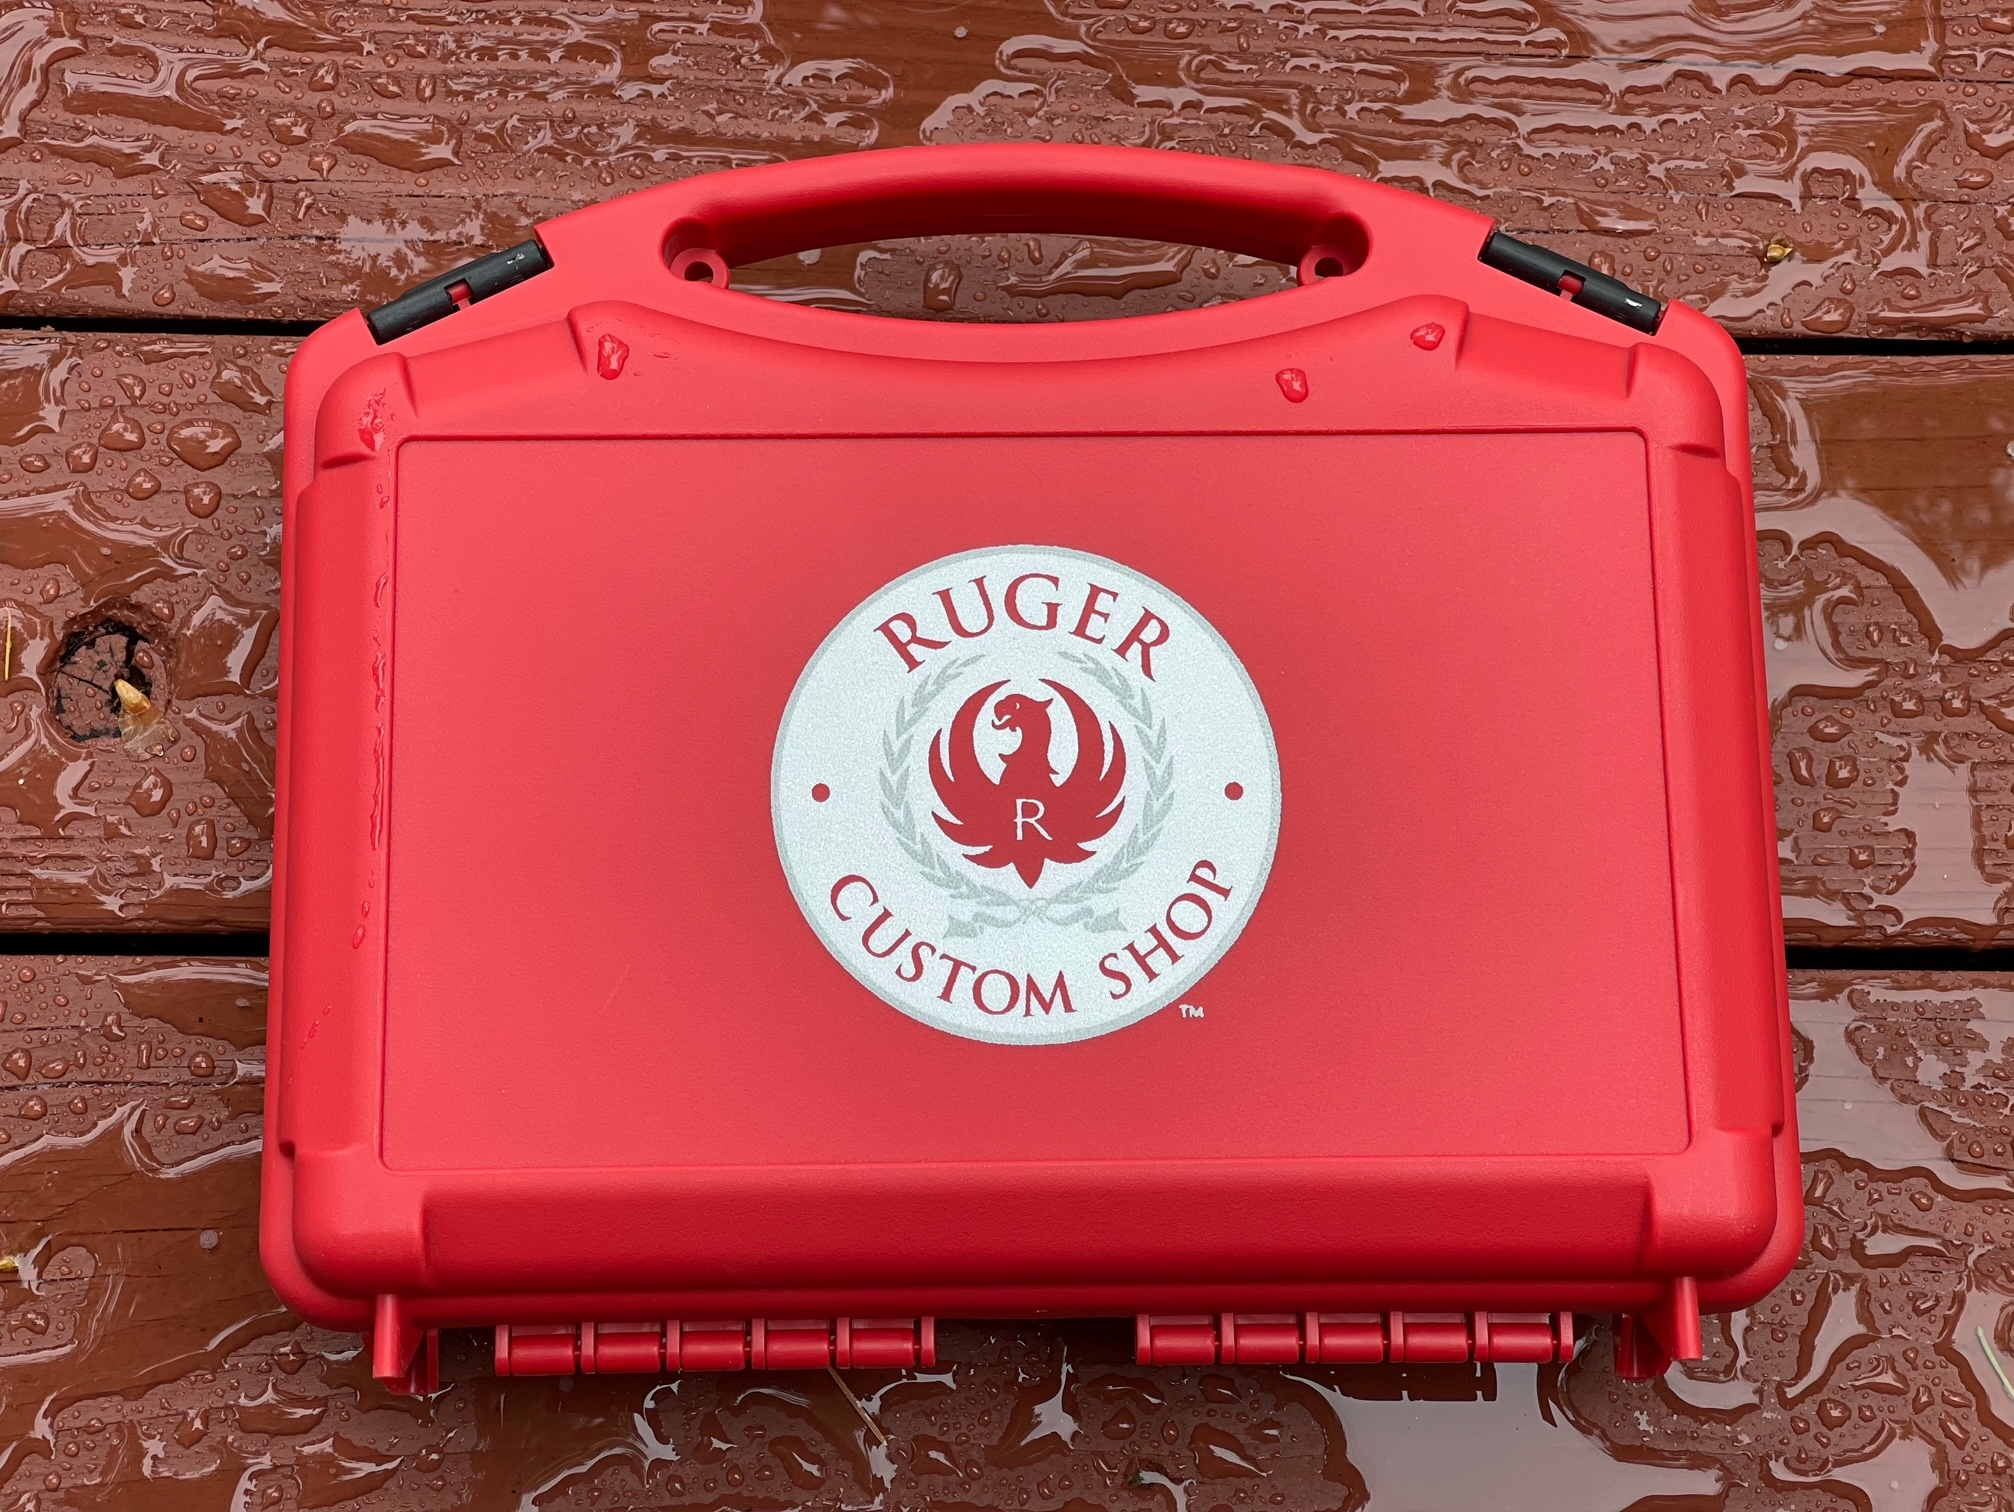 Ships with Ruger Custom Shop Accessory Kit